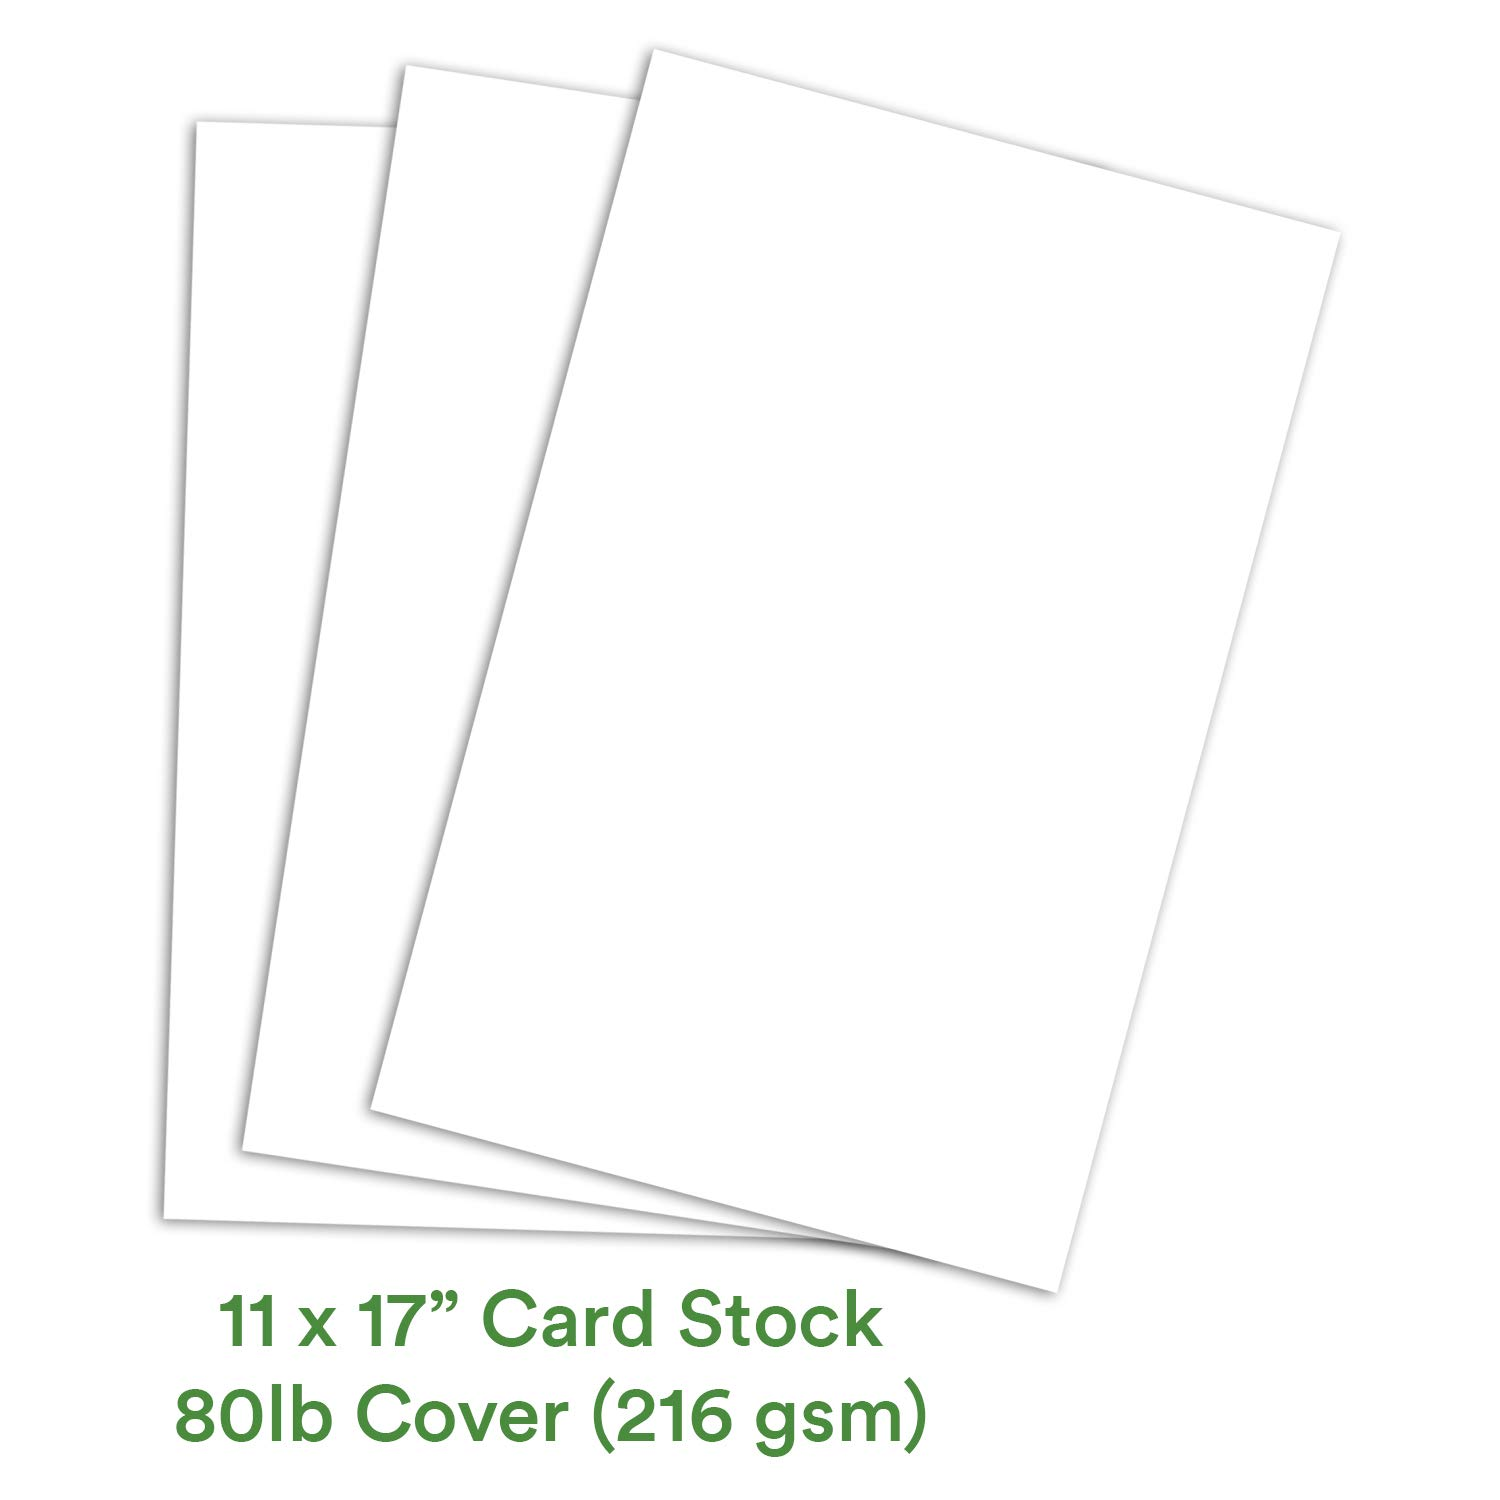 white card stock paper  11 x 17 inch smooth thick heavy